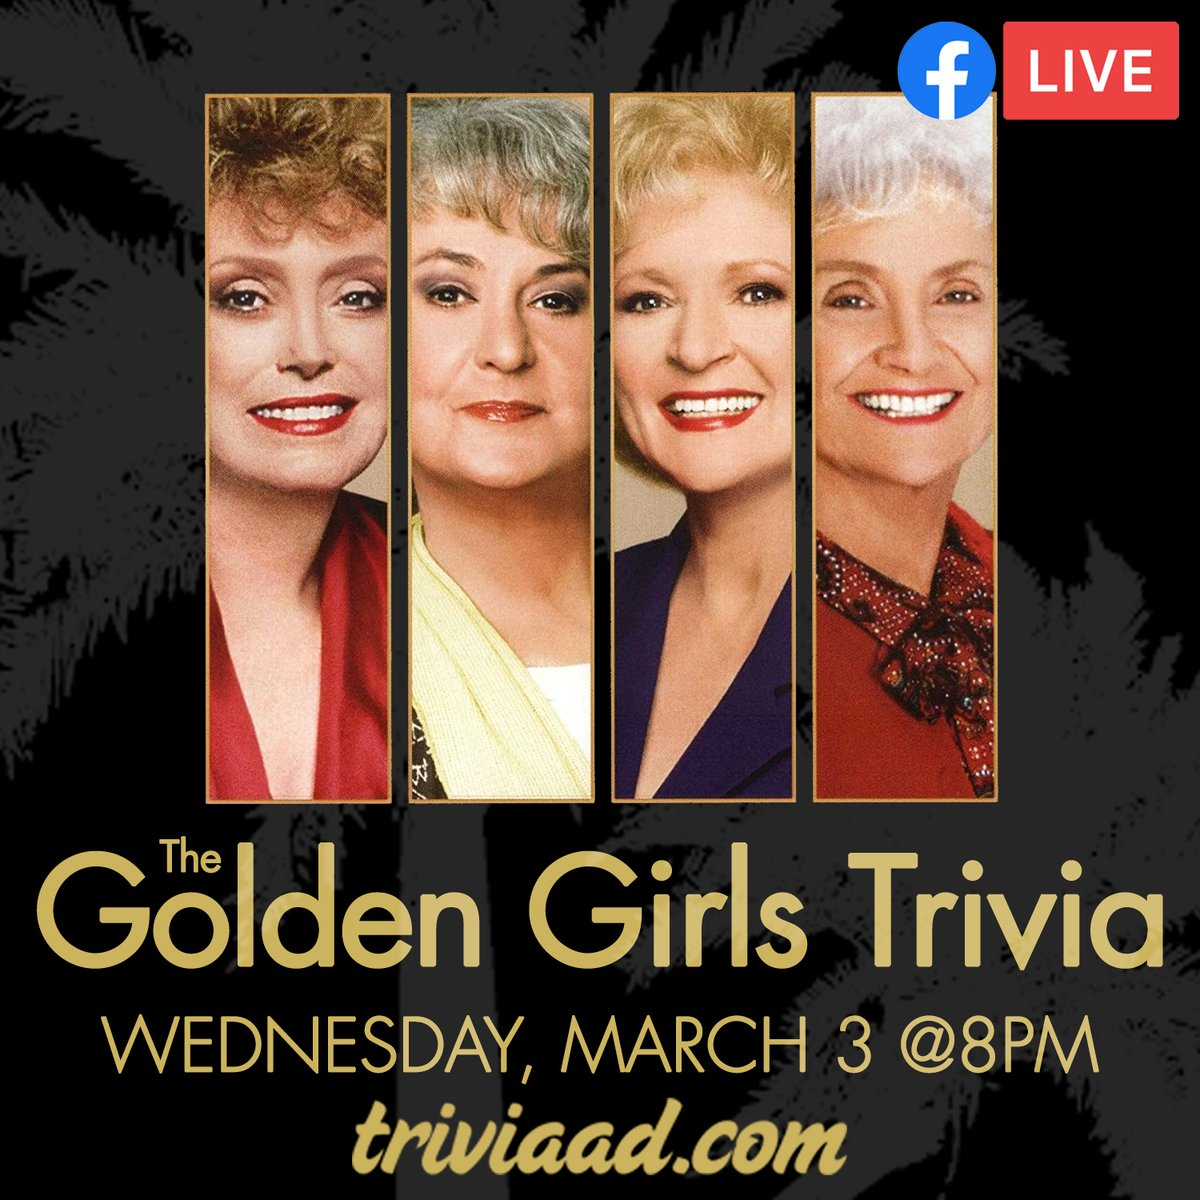 #TheGoldenGirls #Trivia via Facebook Live-Stream TONIGHT at 8pm ET. RSVP GOING on the Facebook event at;  #GoldenGirls #ThemedTrivia #FreeEvents #BettyWhite